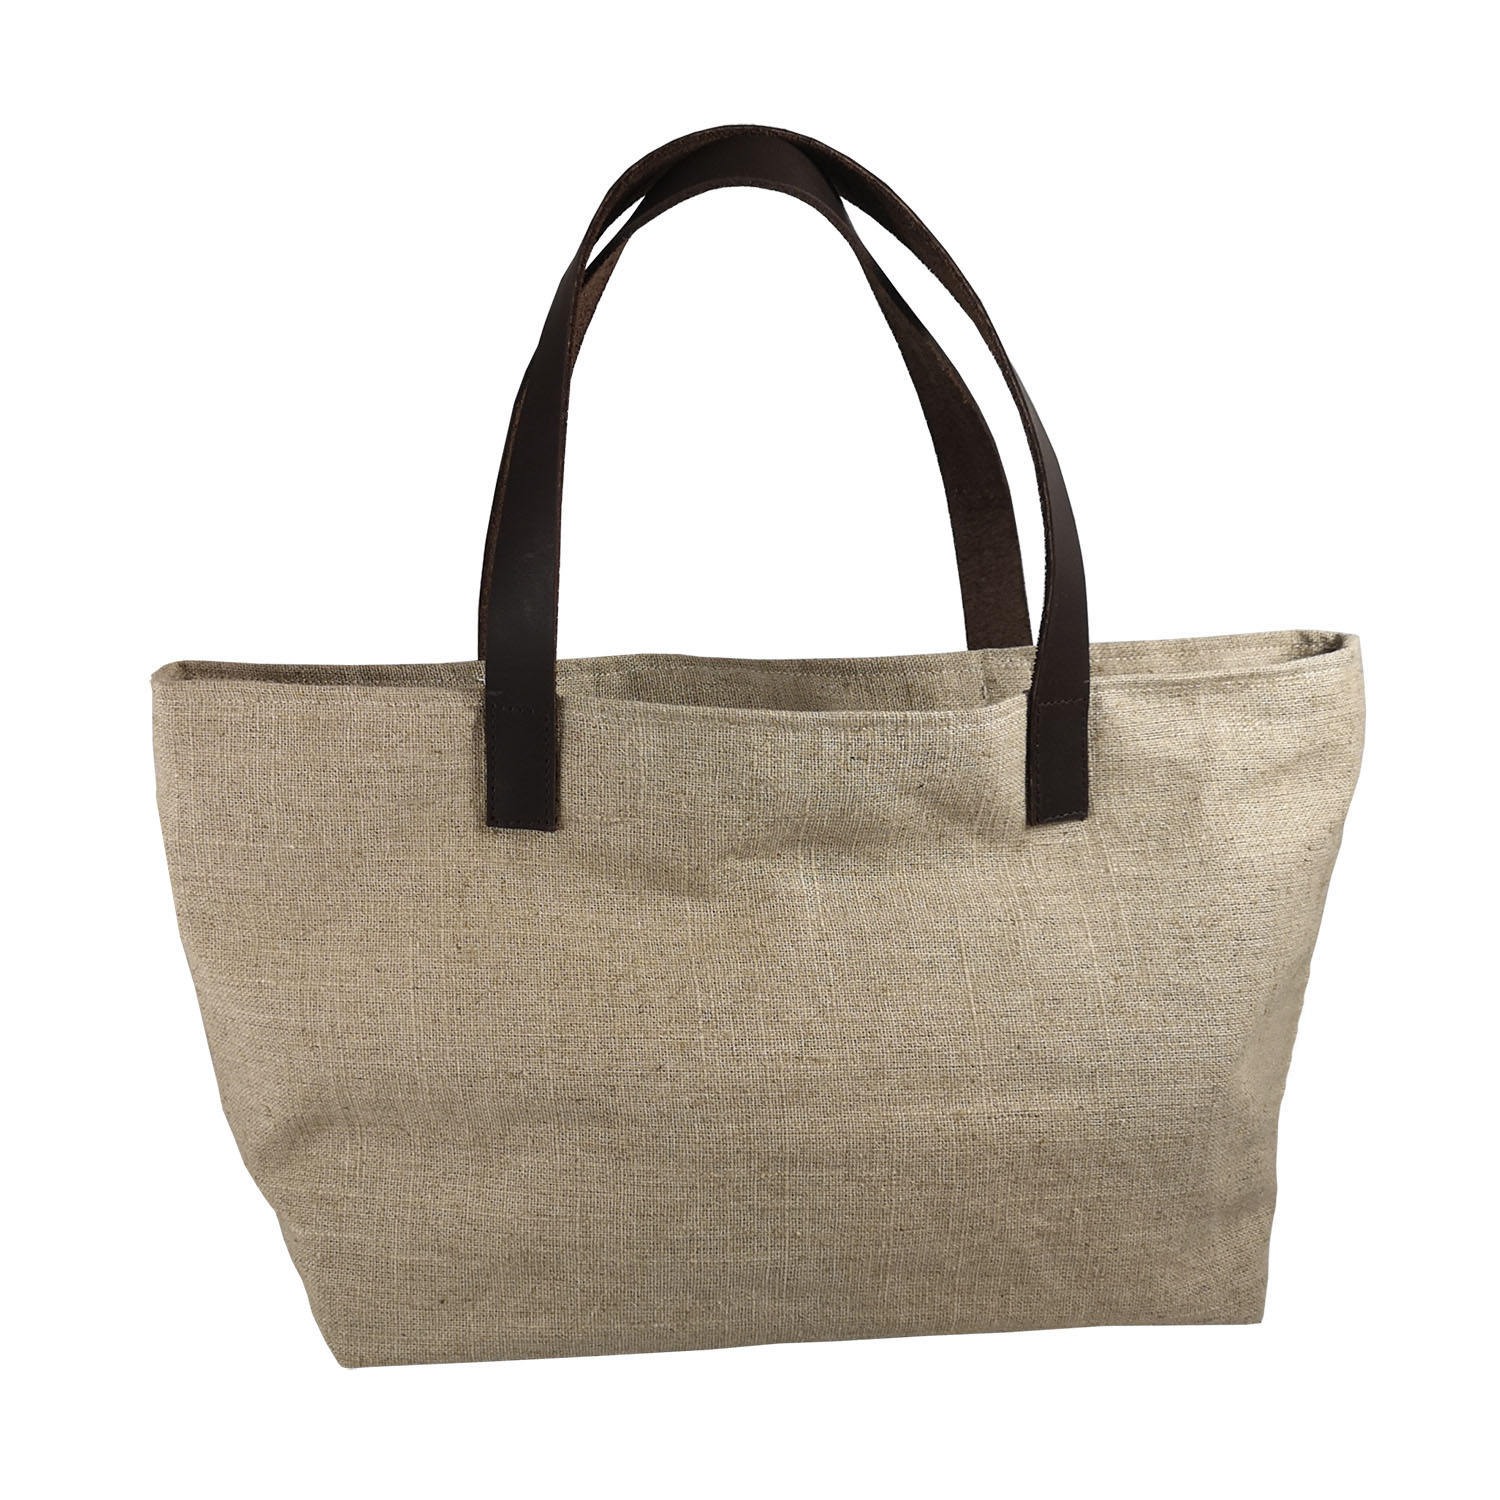 Hemp tote bag with leather shoulder straps